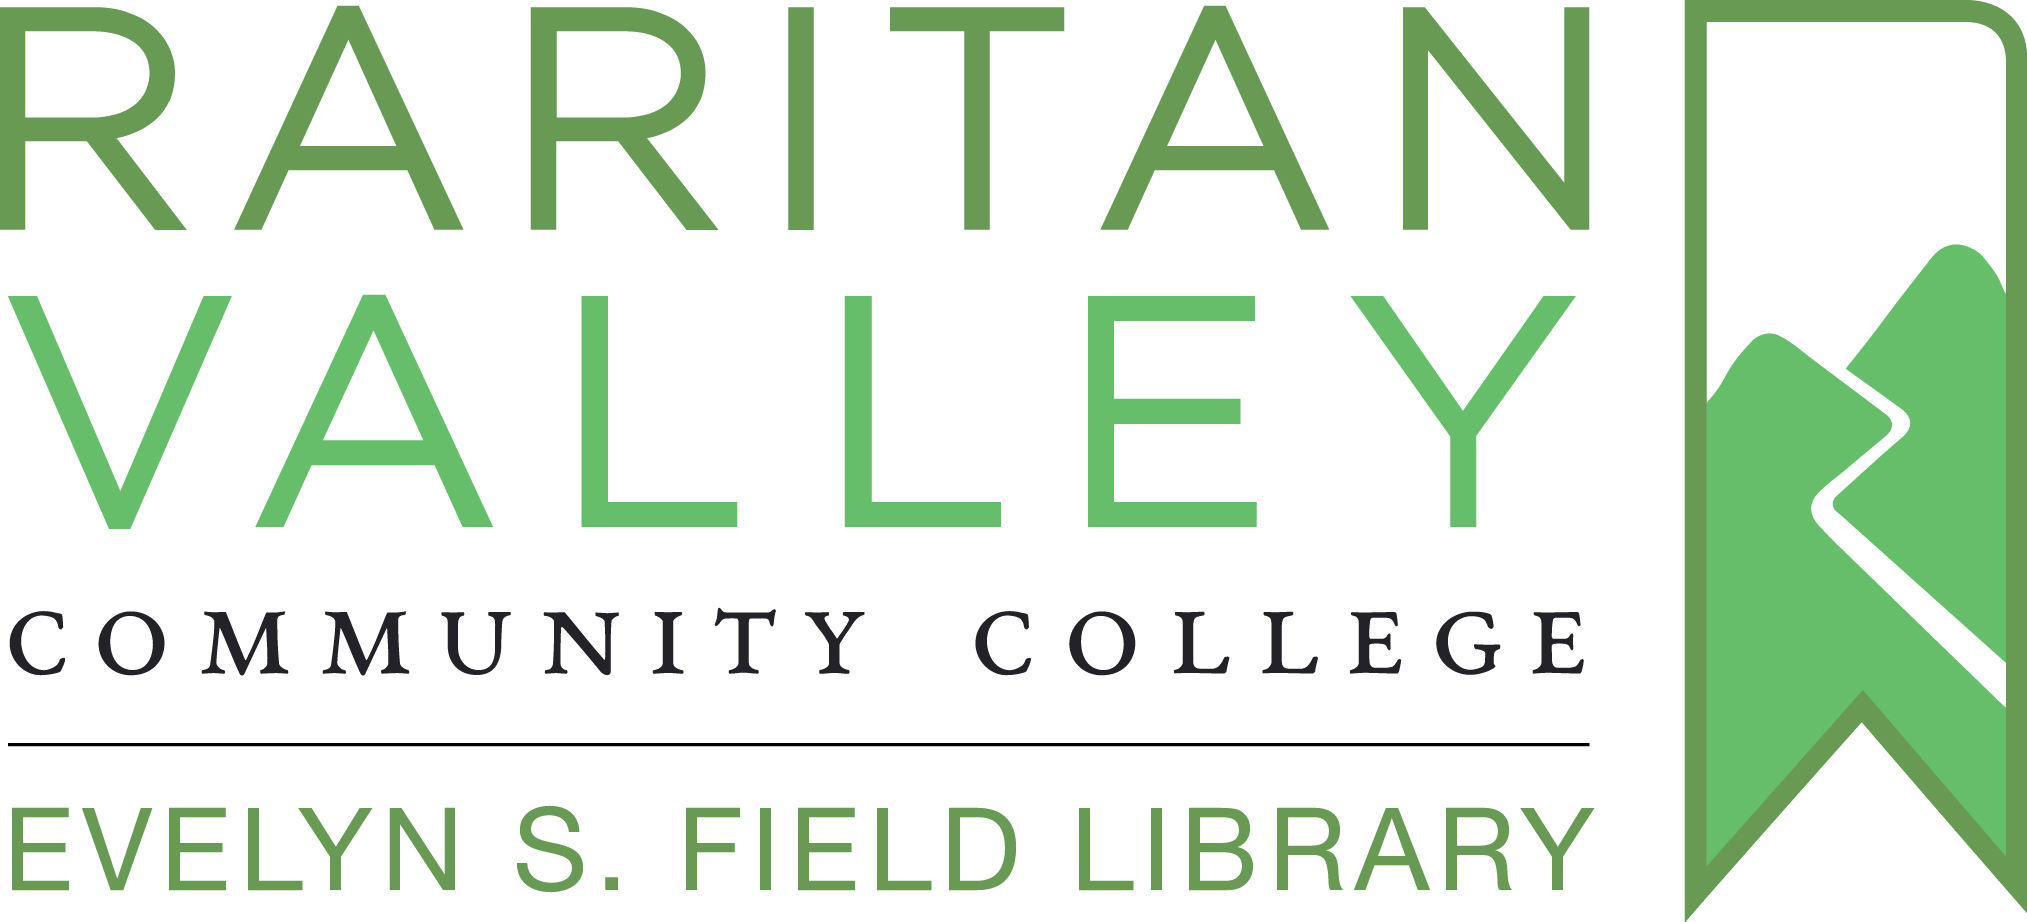 Mindfulness Lecture At Raritan Valley Community College Presented by Hayk Zar.jpg